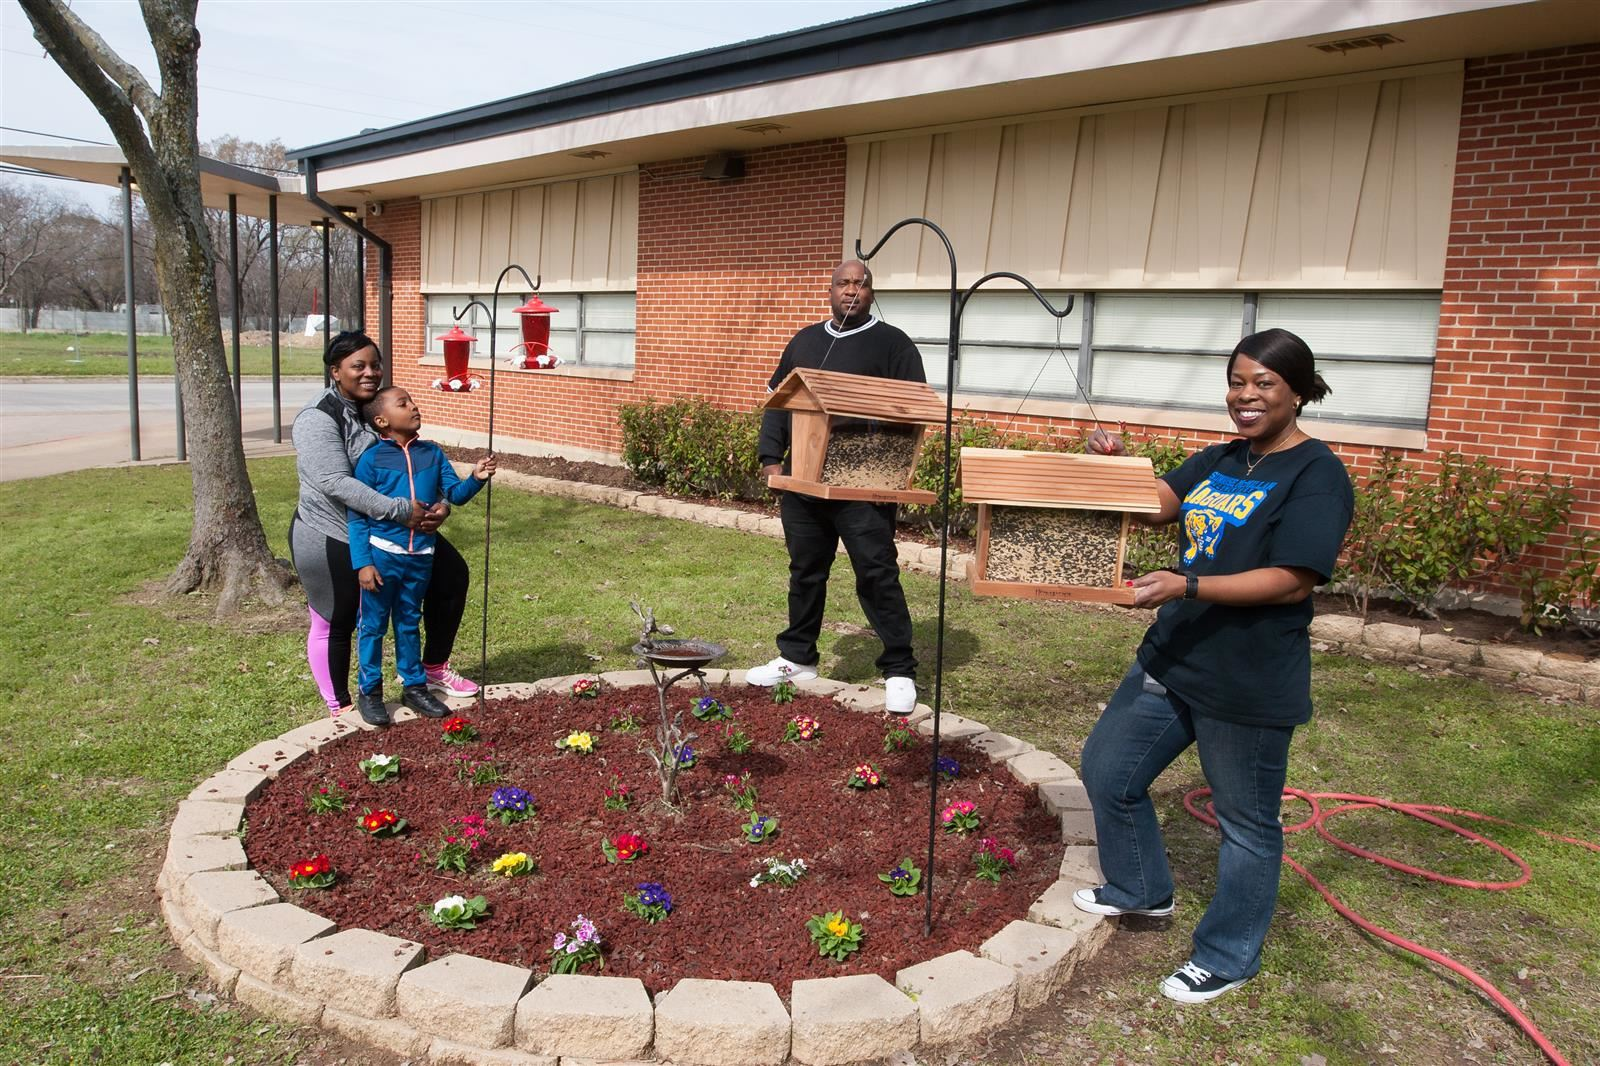 SUNRISE-MCMILLAN ES CAMPUS BEAUTIFICATION PROJECT